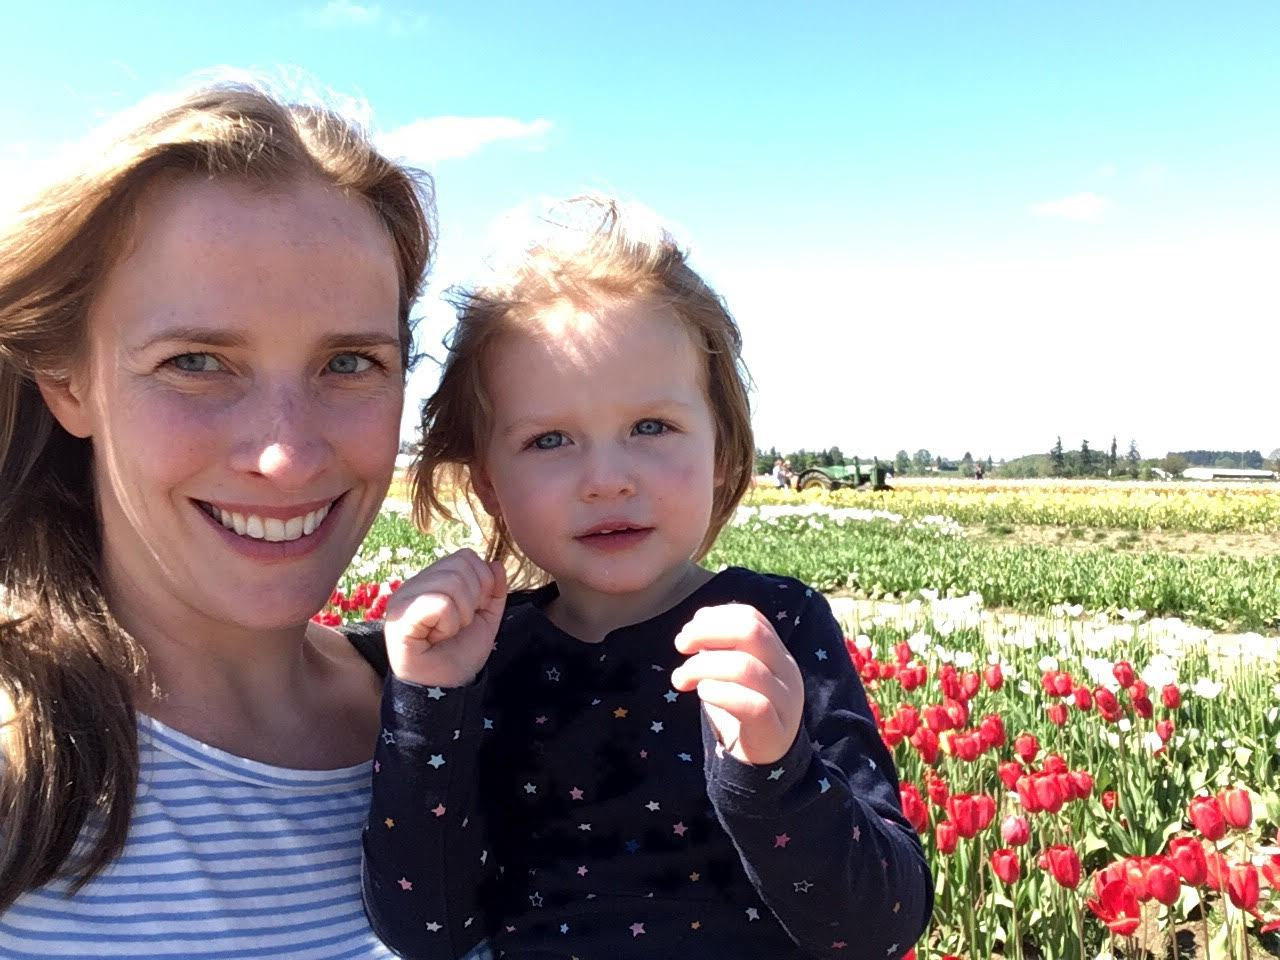 Happy 275th from the red and gold tulip fields of Oregon - Emily Auerbach Rake '01, daughter Simone and brother John Auerbach '05